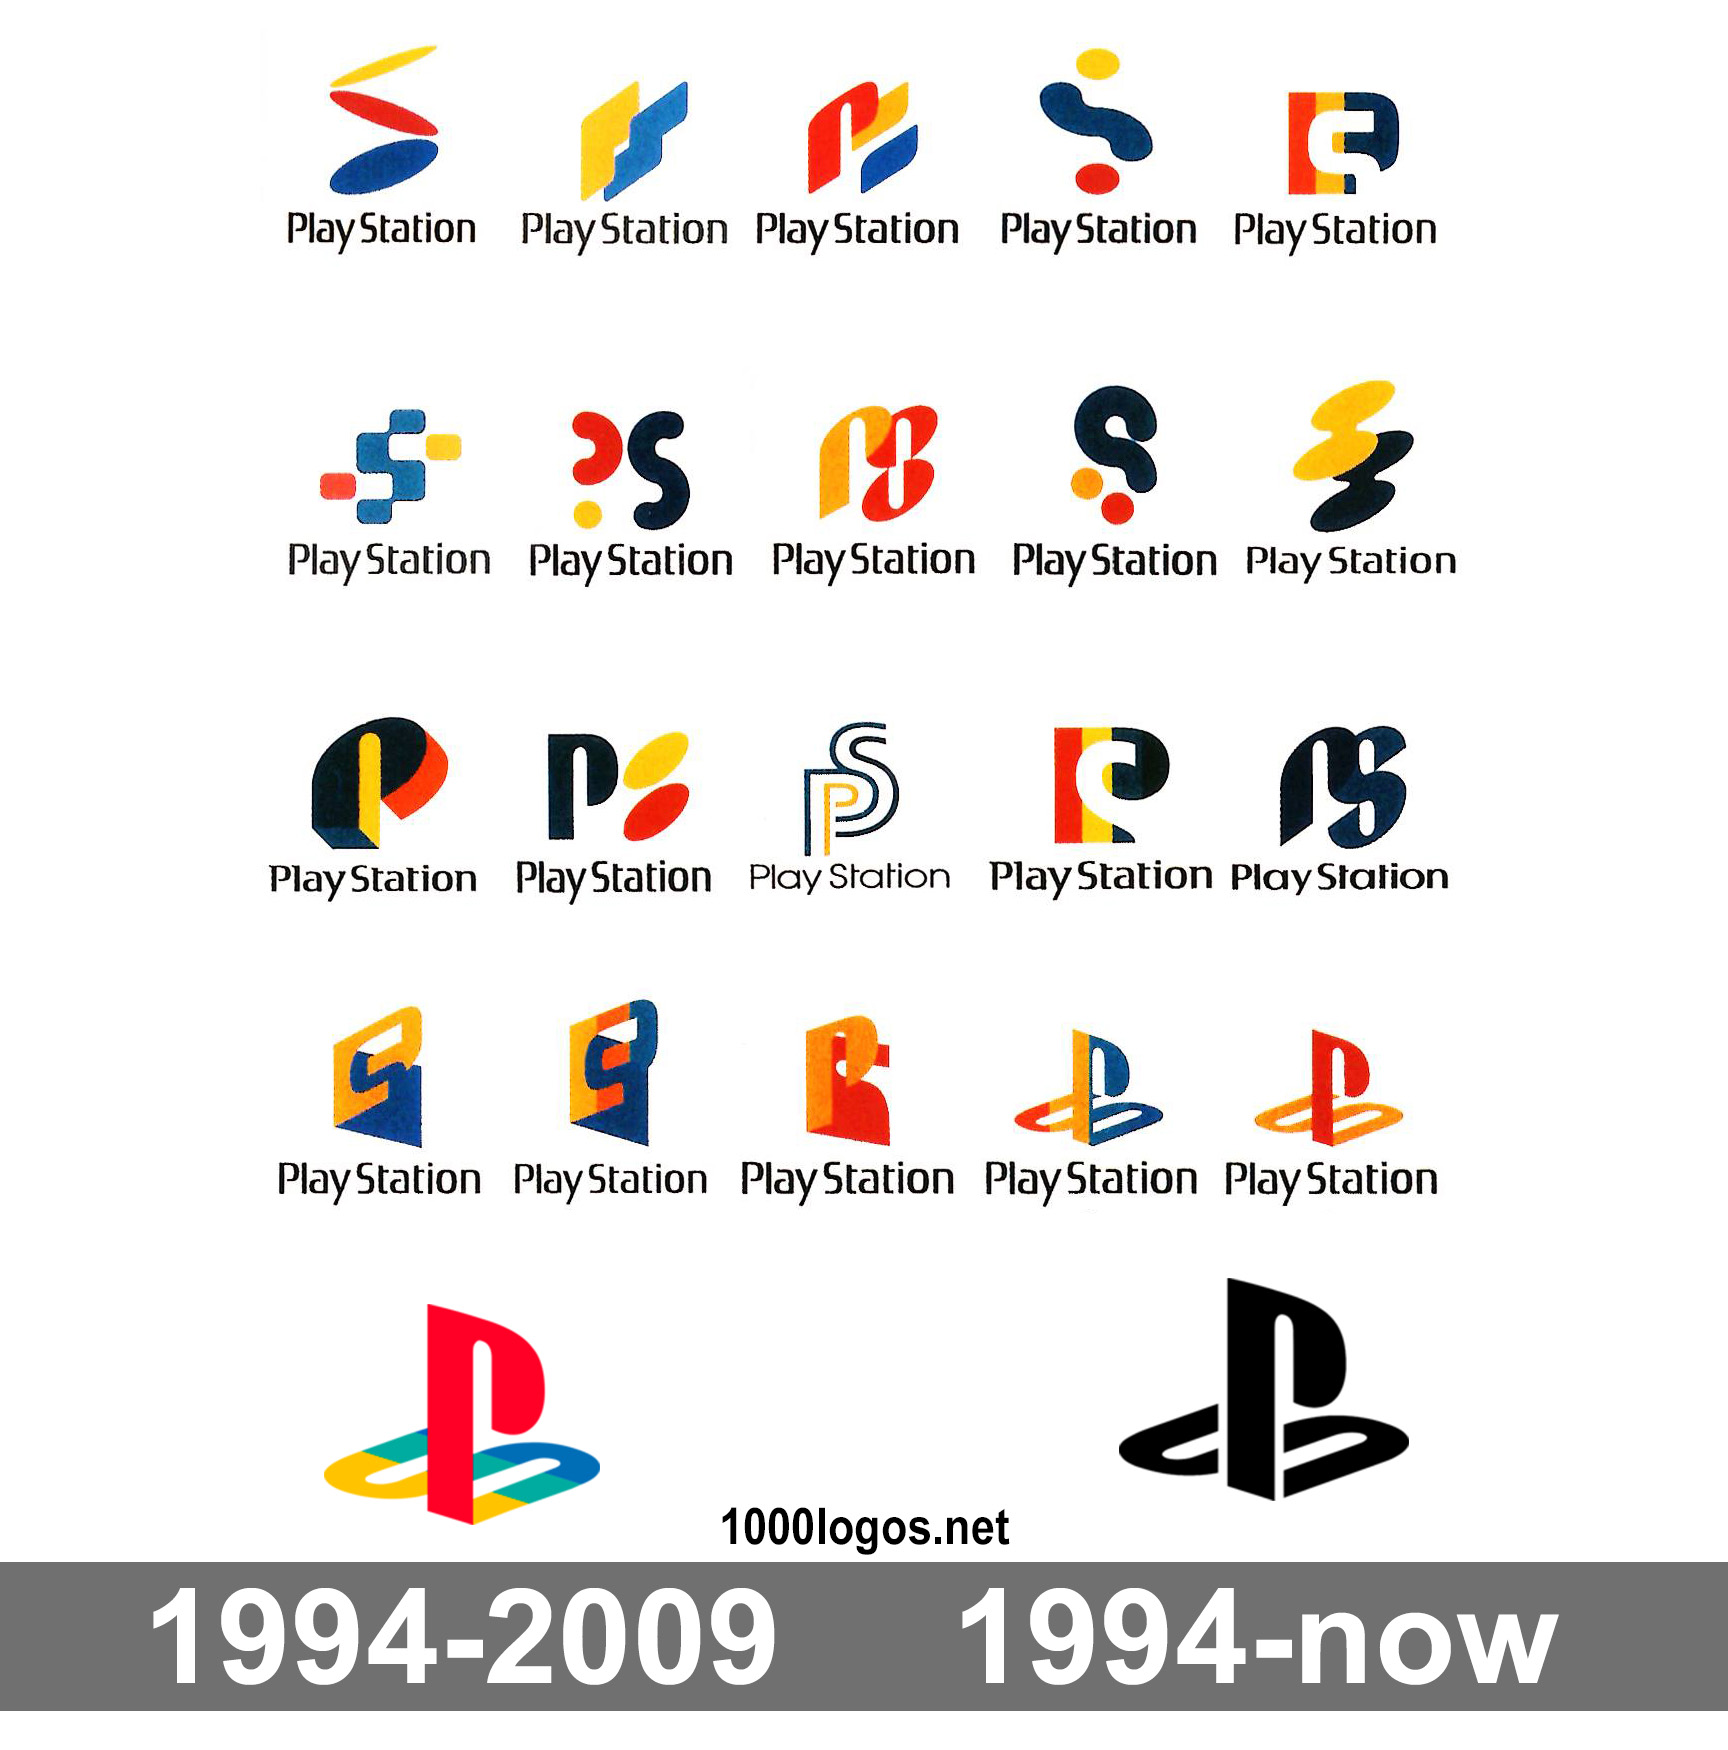 PlayStation Logo Symbol Meaning History And Evolution